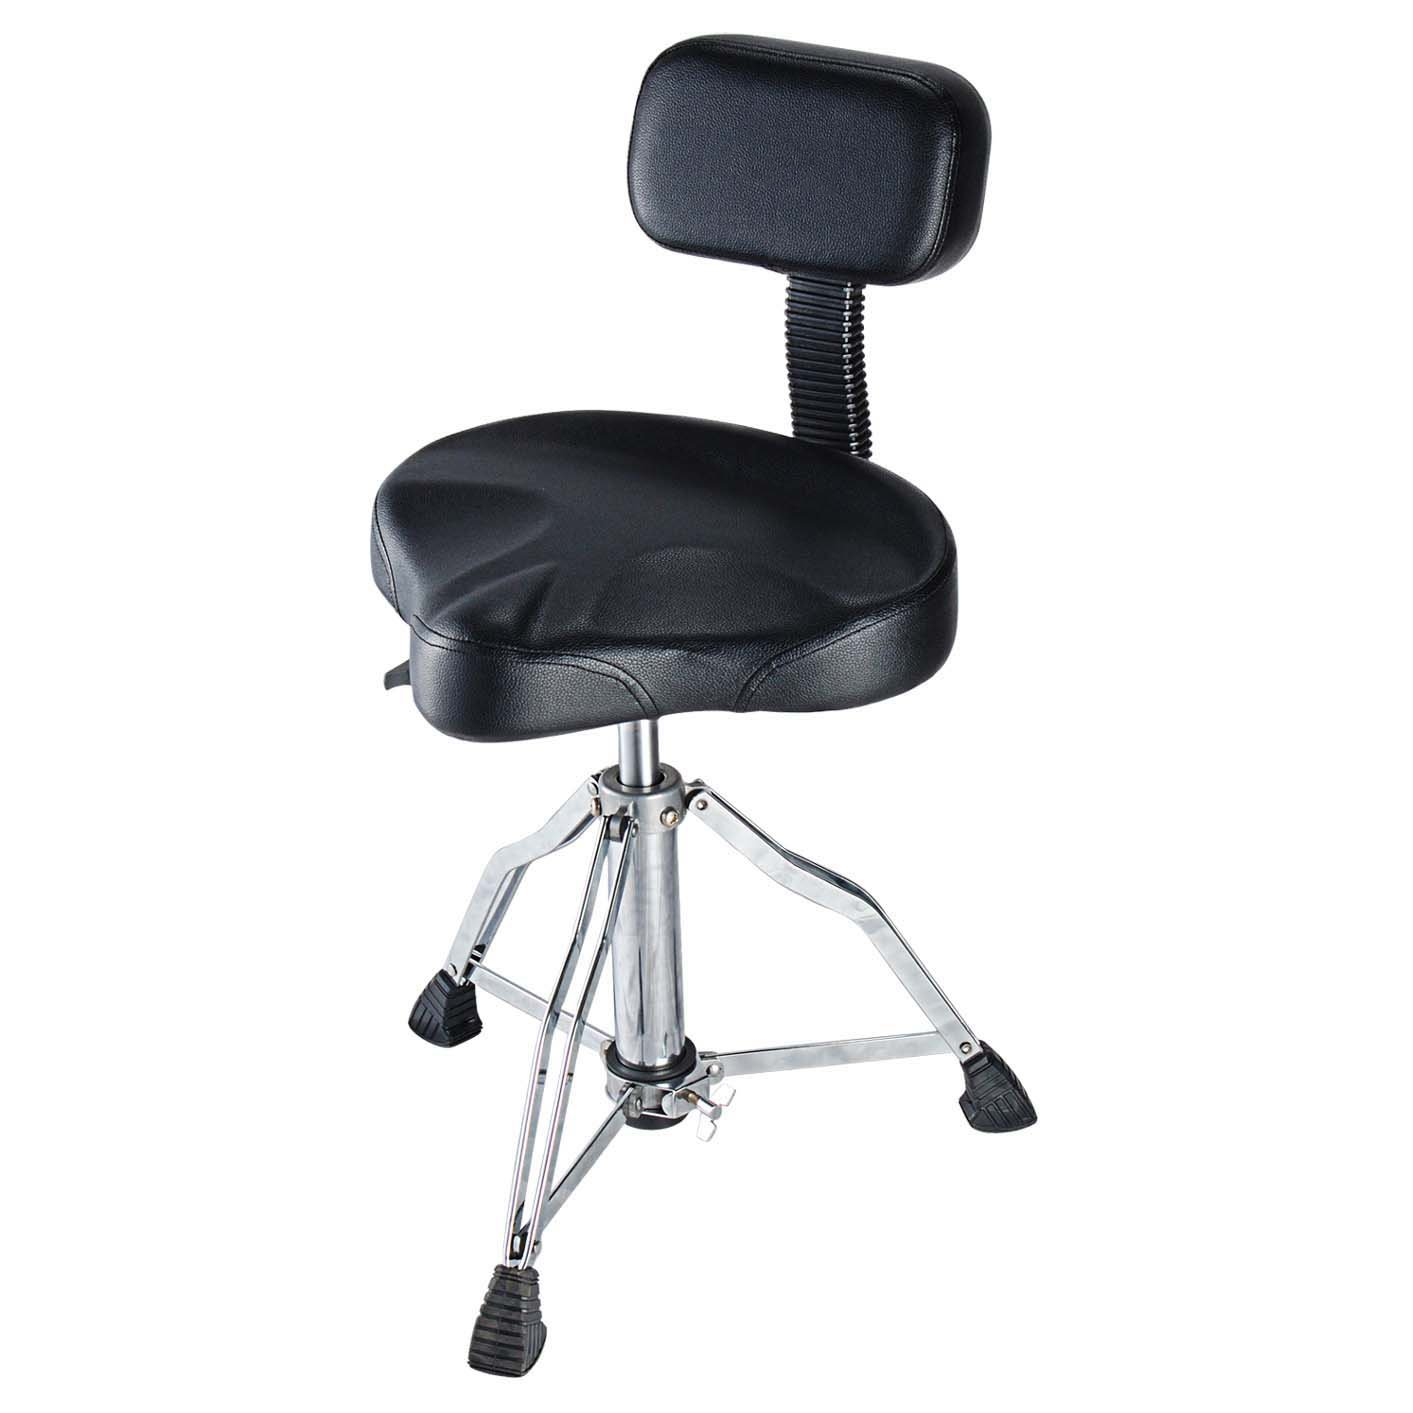 DB Musical Drum stool Pneumatic Hydraulic With Back Rest Gas Lift Type DTRAB-1118 Amazon.co.uk Musical Instruments  sc 1 st  Amazon UK & DB Musical Drum stool Pneumatic Hydraulic With Back Rest Gas Lift ... islam-shia.org